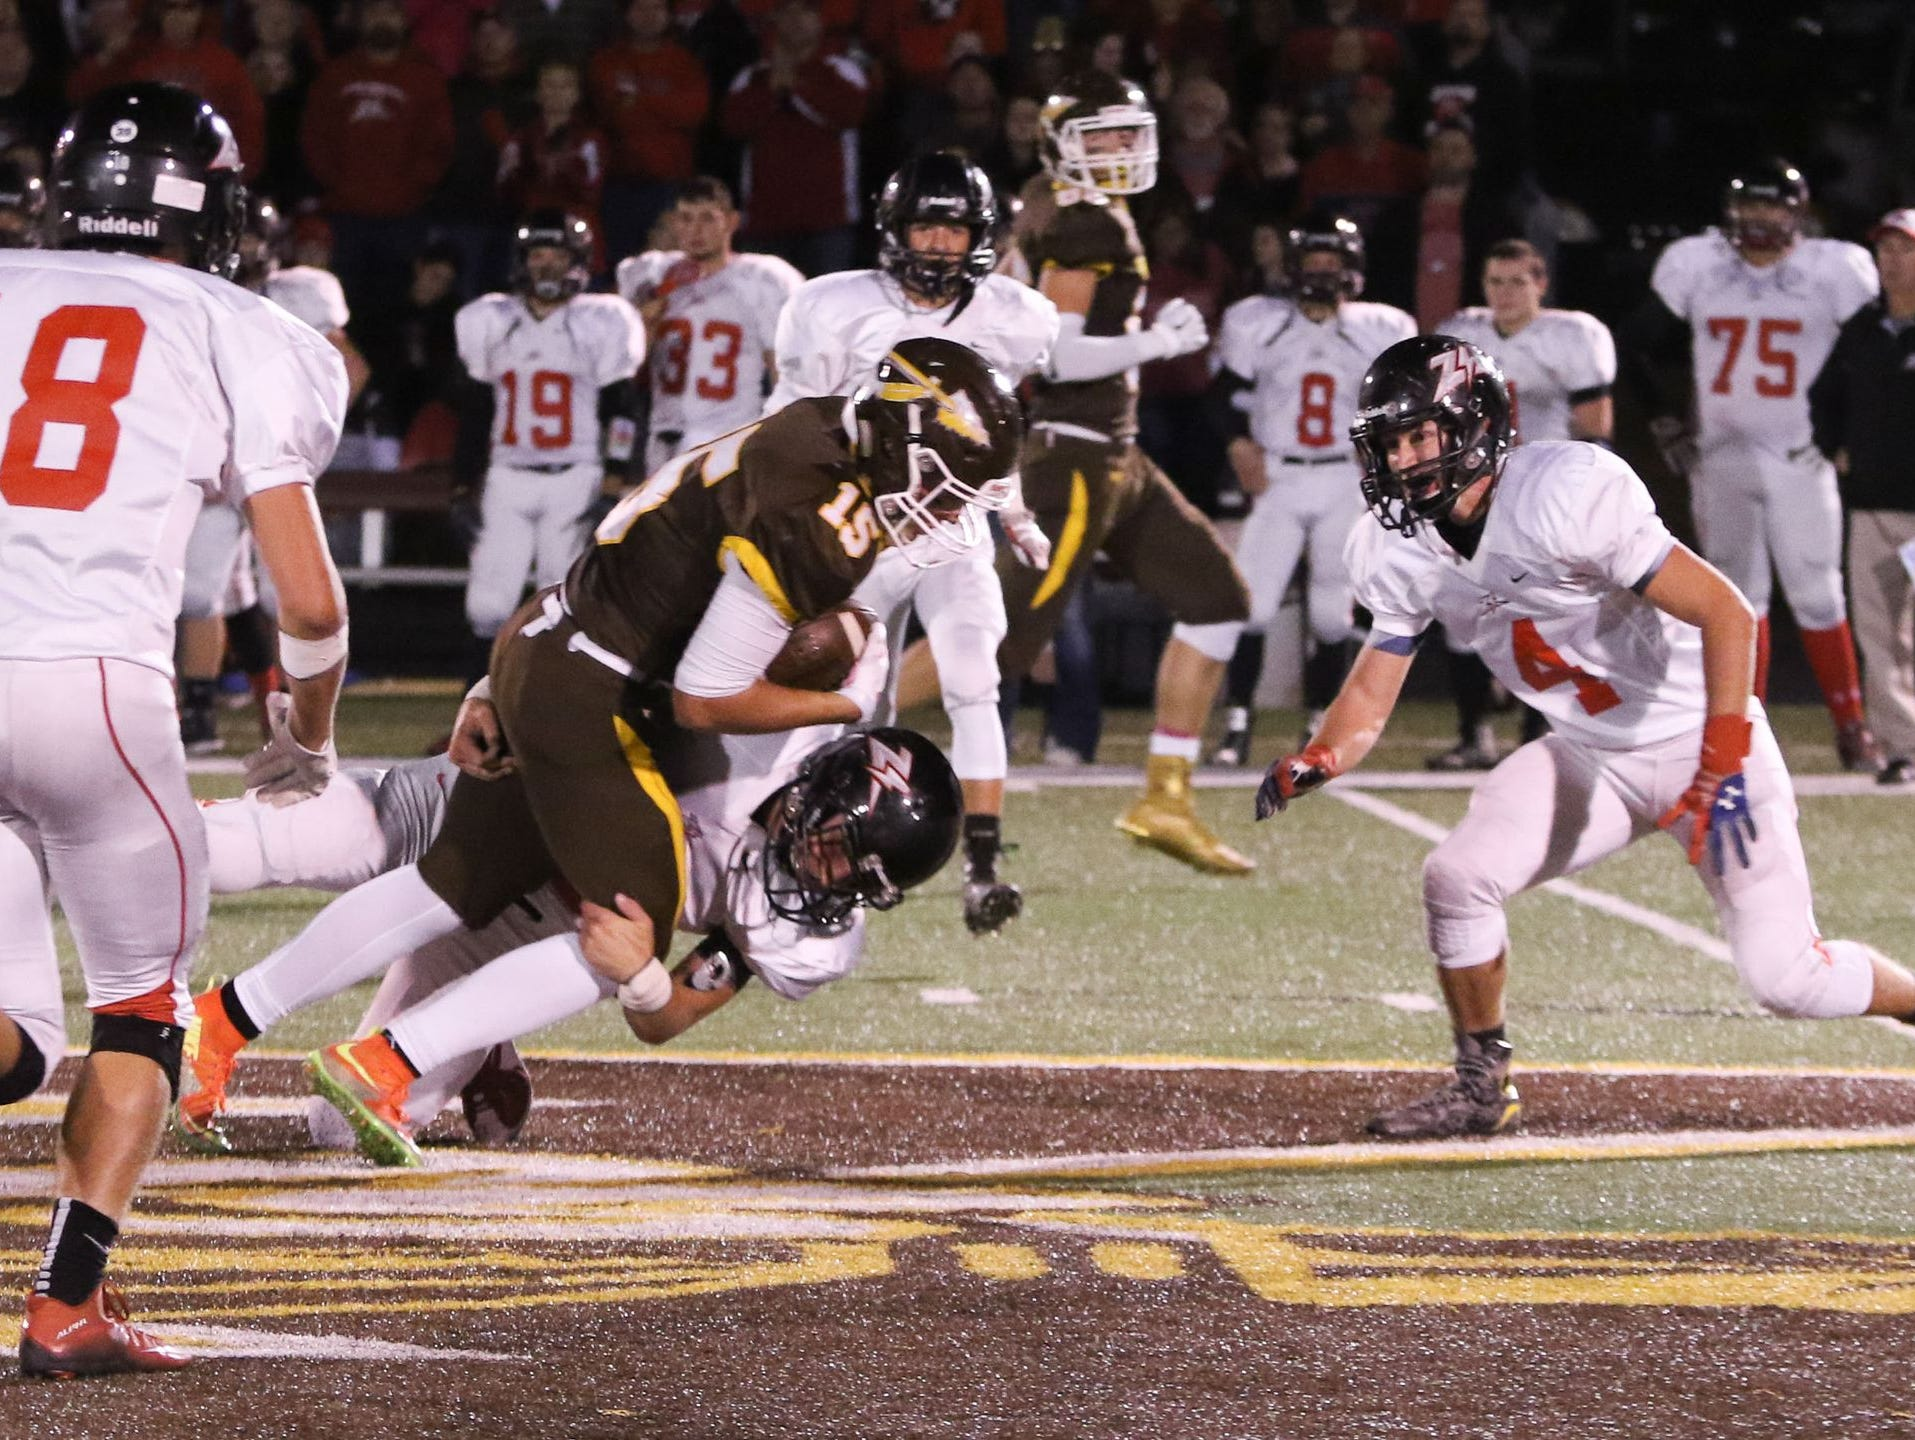 The West Plains Zizzers defense in action during a game at Kickapoo in 2015. The Zizzers play at Glendale on Friday, Sept. 2, 2016.